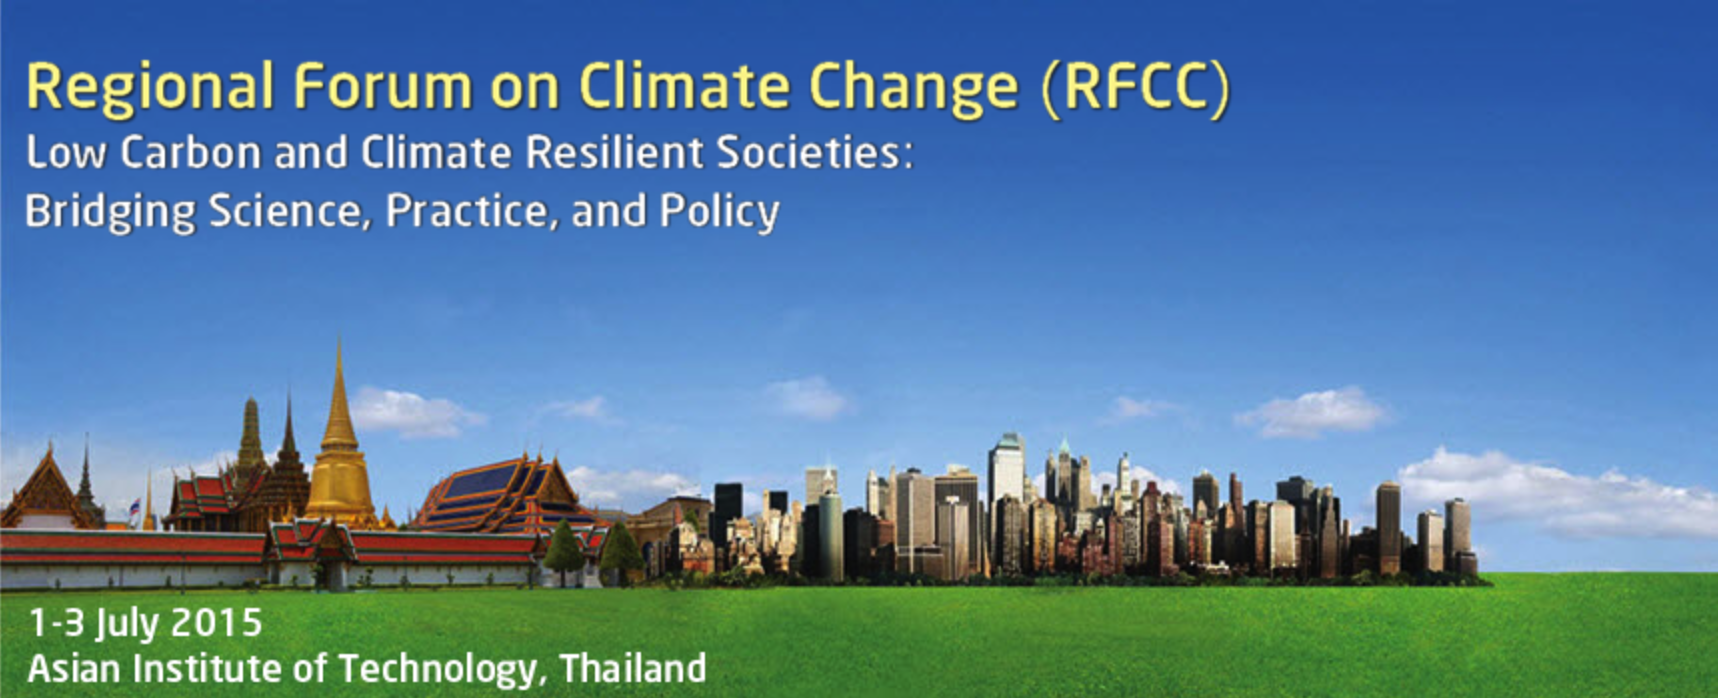 Regional Forum on Climate Change (RFCC) – Low Carbon and Climate Resilient Societies: Bridging Science, Practice, and Policy – 1 to 3 July 2015, Asian Institute of Technology, Thailand.